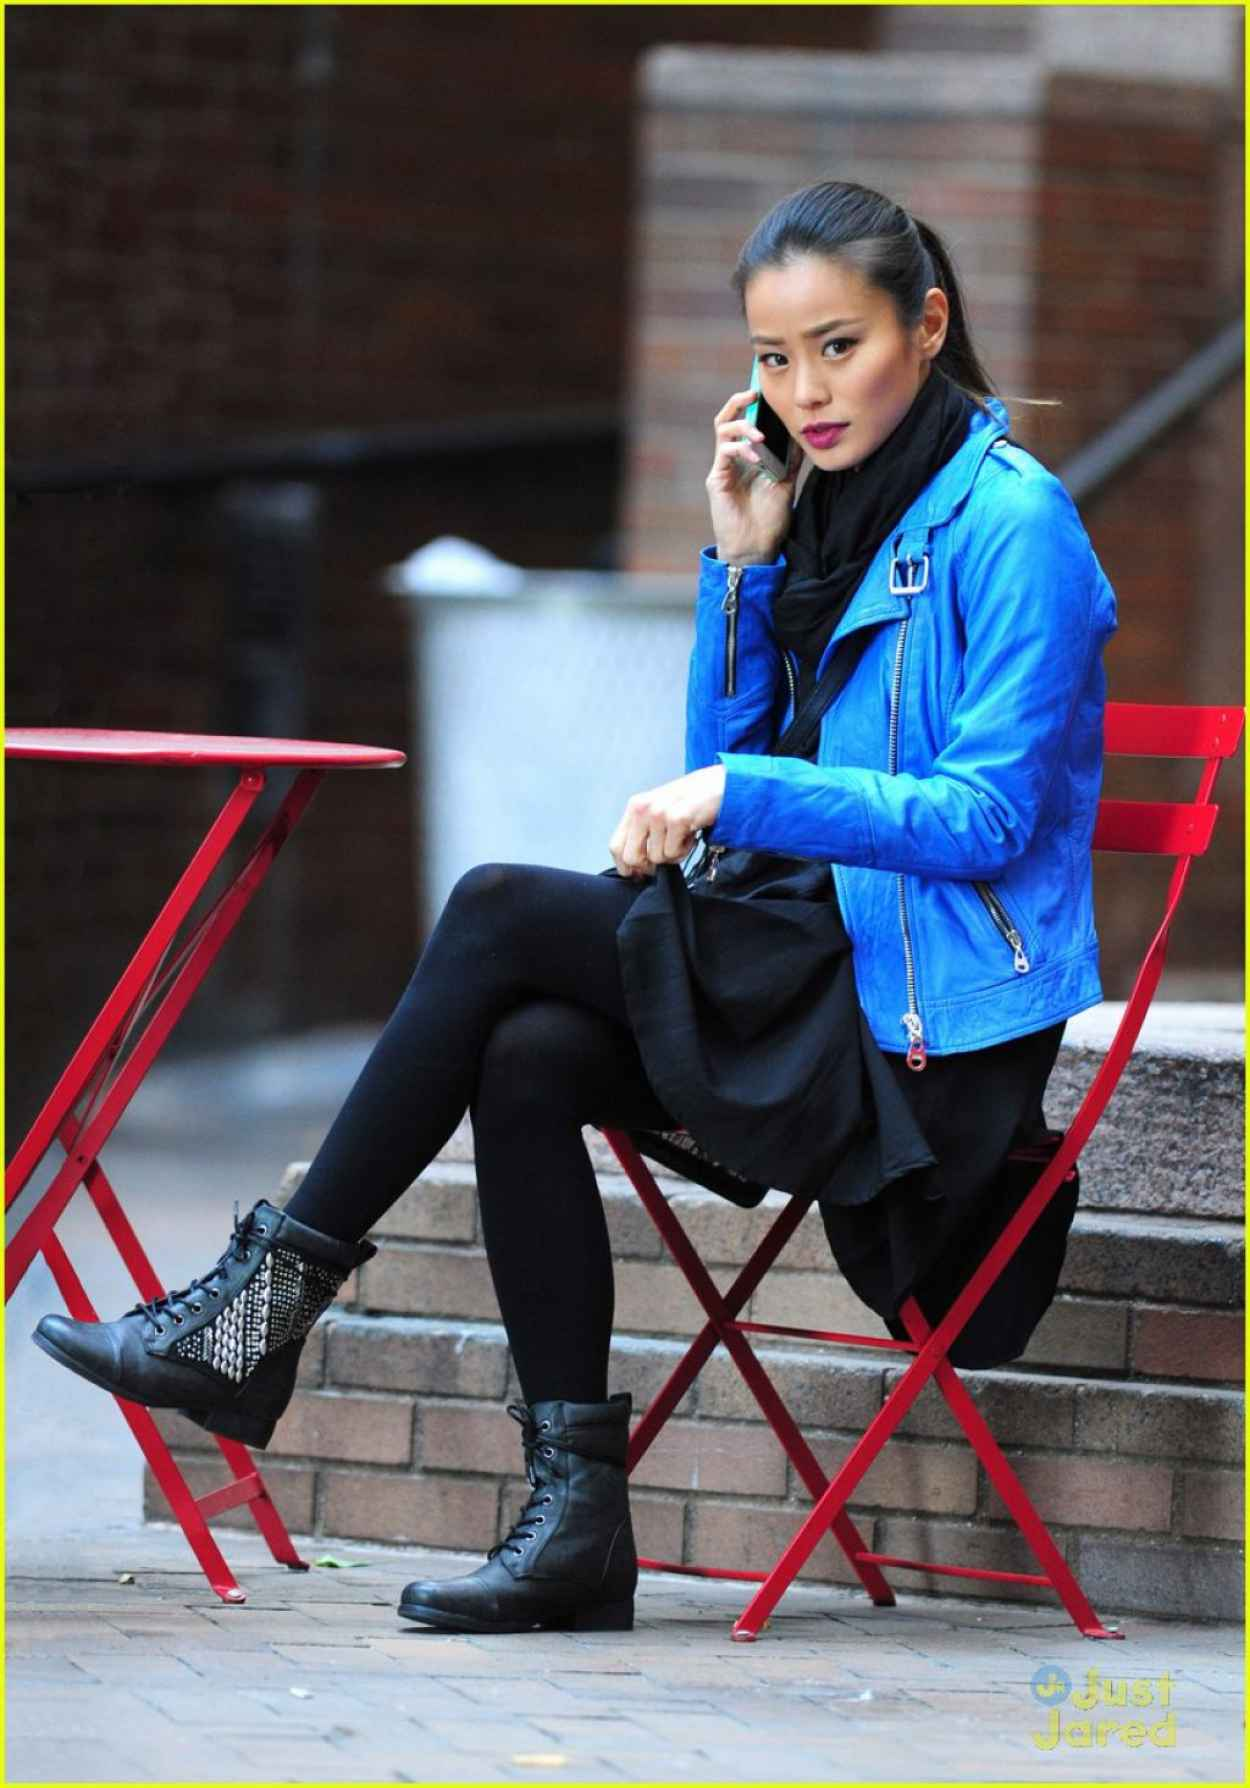 Jamie Chung Street Style - Candy in a Blue Jacket Out in New York City - November 2015-1